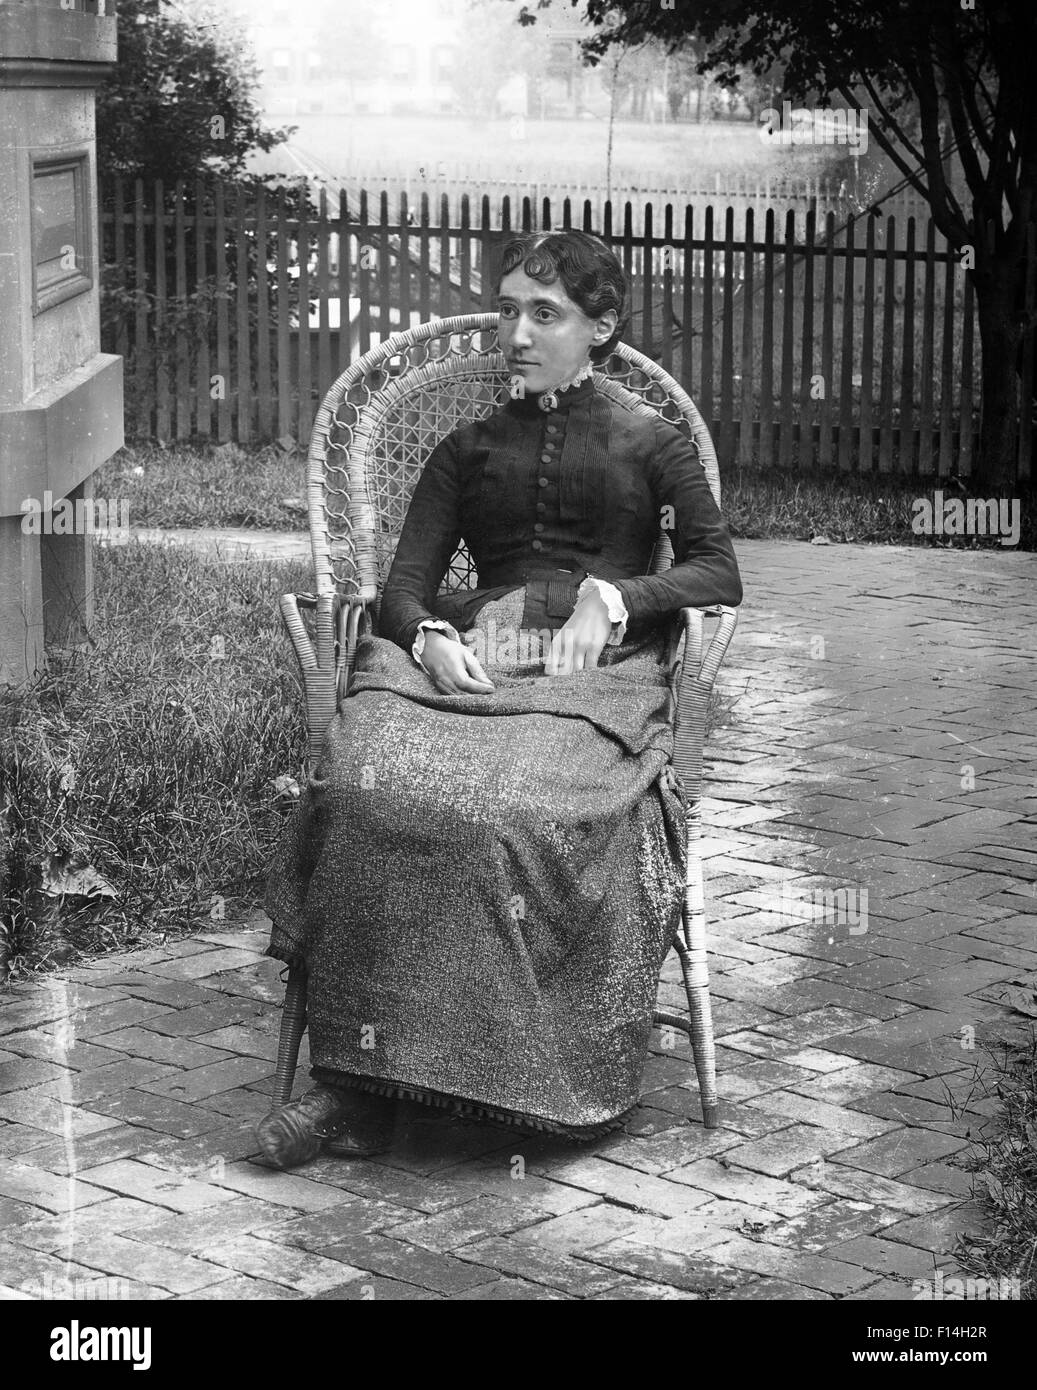 1890s 1900s TURN OF THE 20TH CENTURY PORTRAIT SEVERE WOMAN SITTING IN WICKER CHAIR IN BACKYARD BY HOUSE - Stock Image